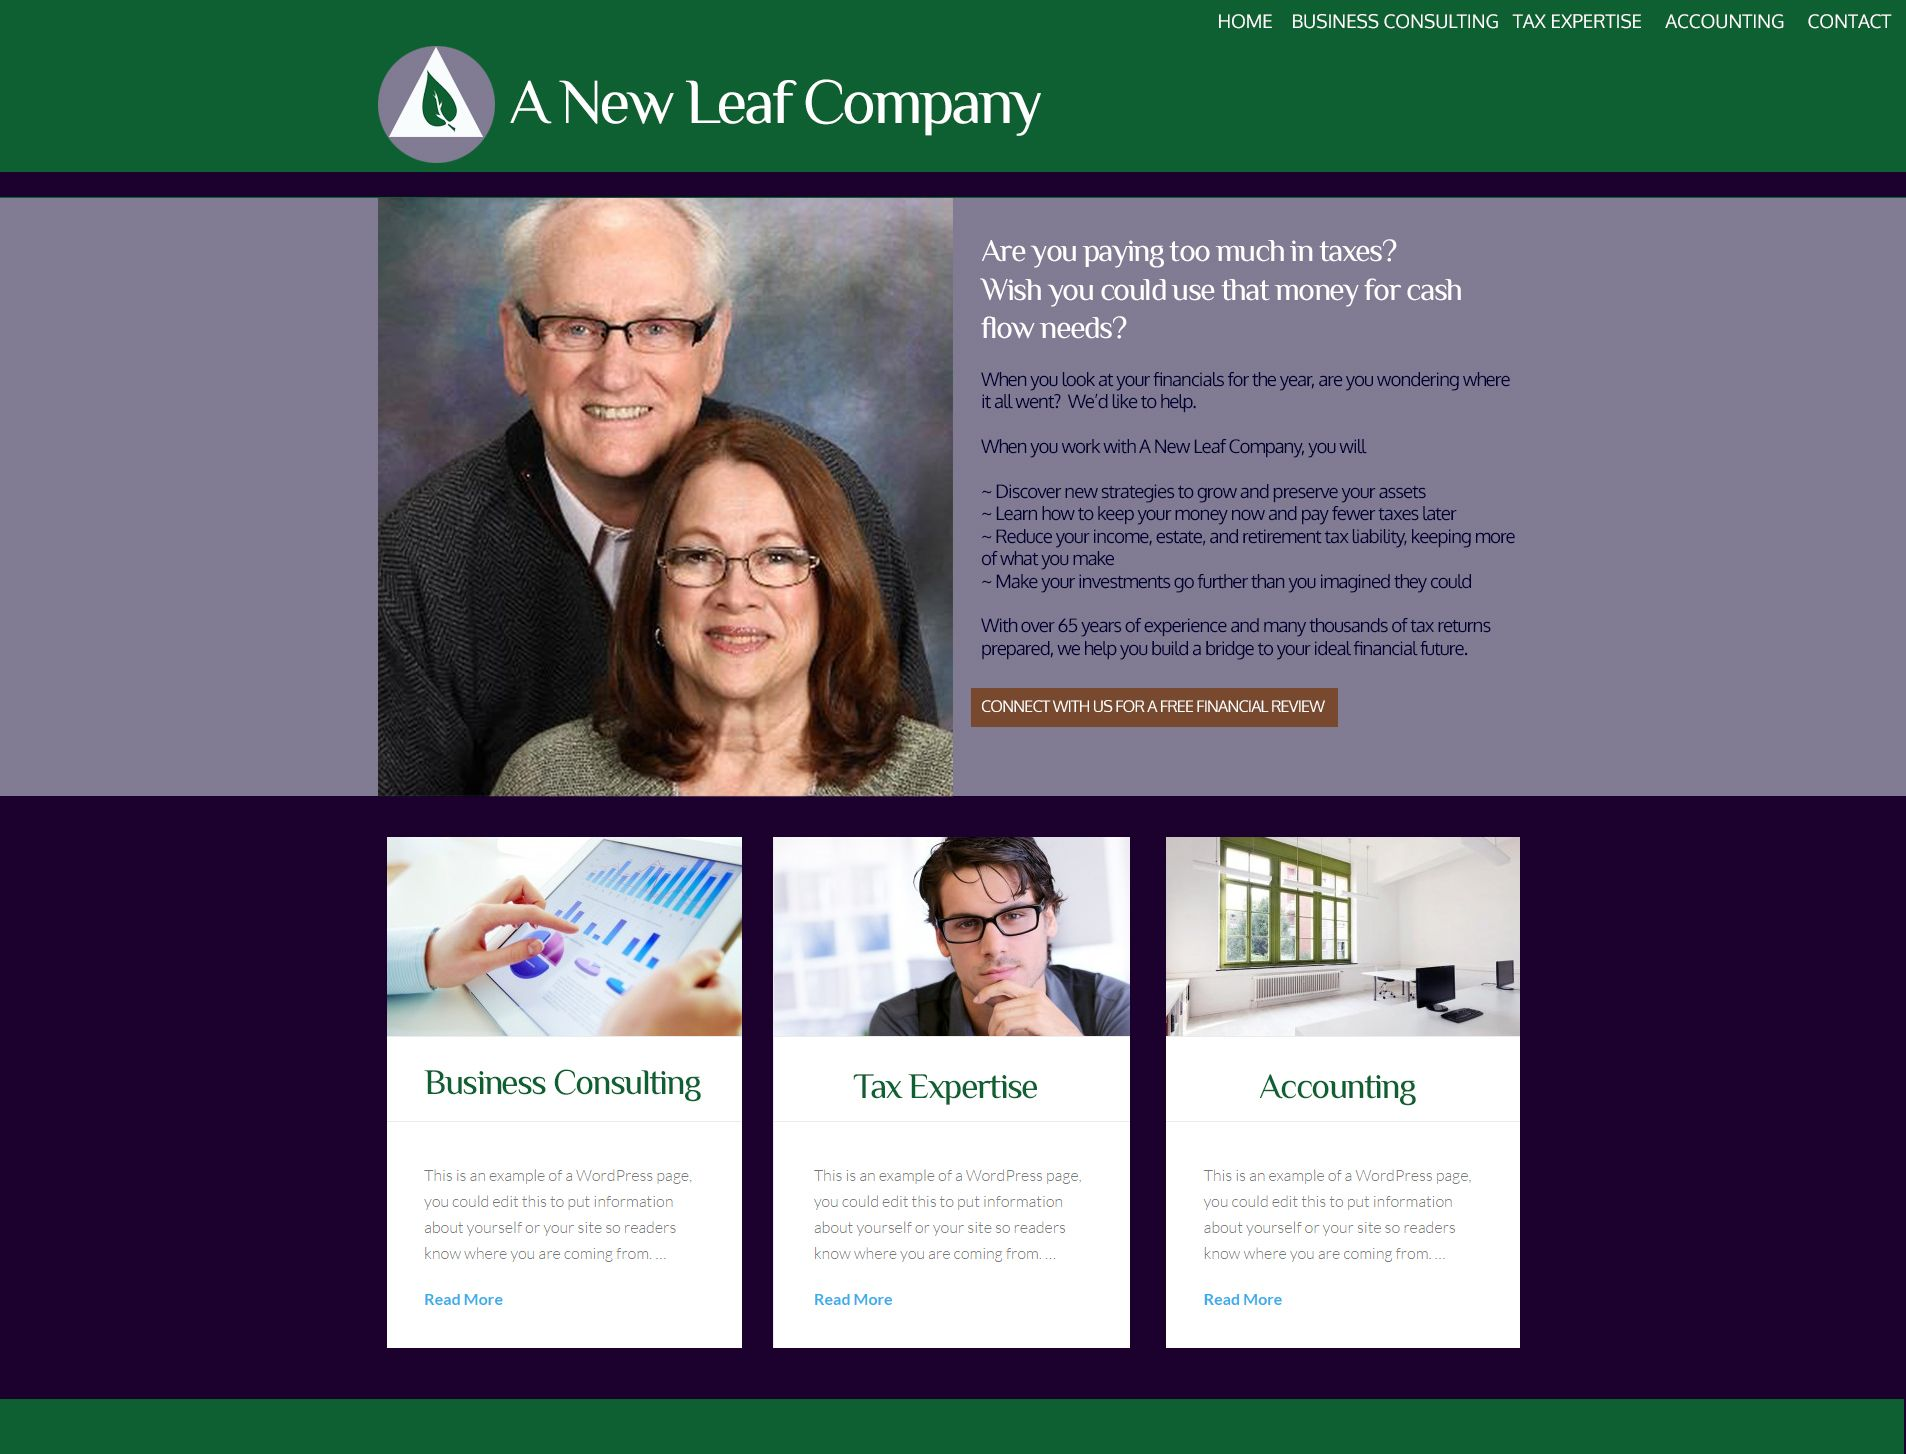 Website Theme Design For A New Leaf Company An Accounting Firm Based In Santa Rosa Ca Spiritual Entrepreneur Consulting Business Marketing Company